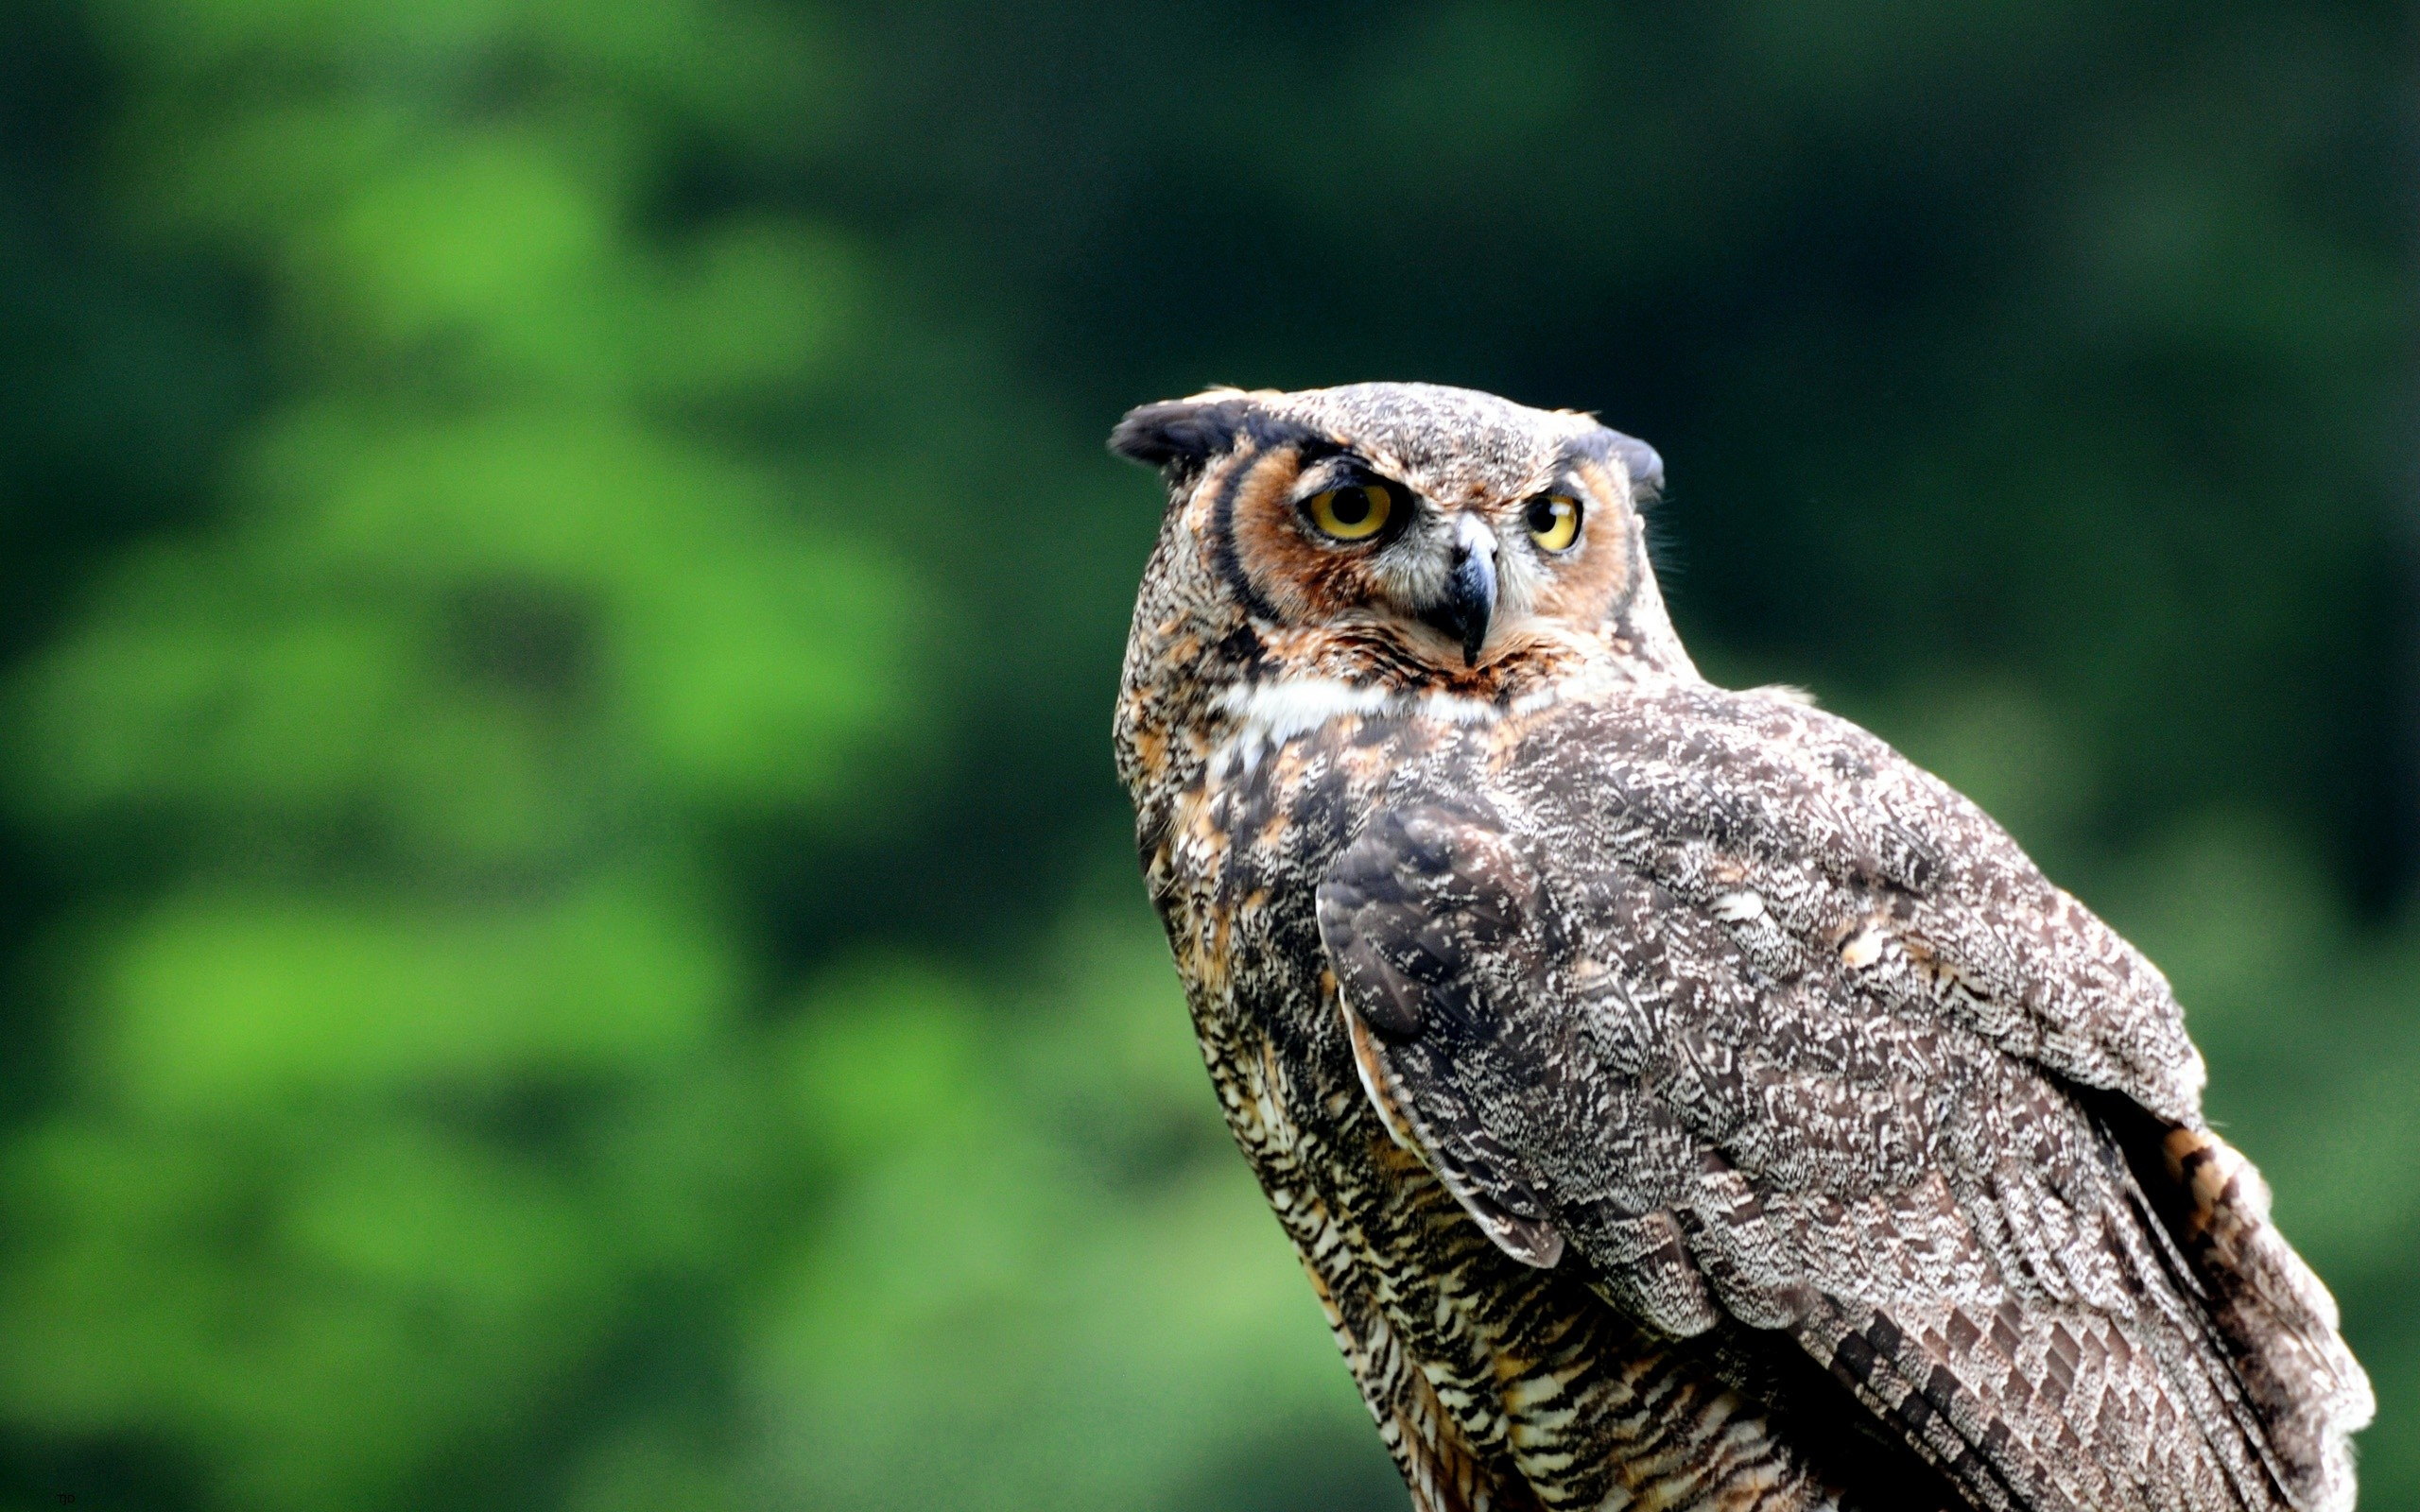 Owl Wallpapers, Owl Backgrounds, Owl Free HD Wallpapers